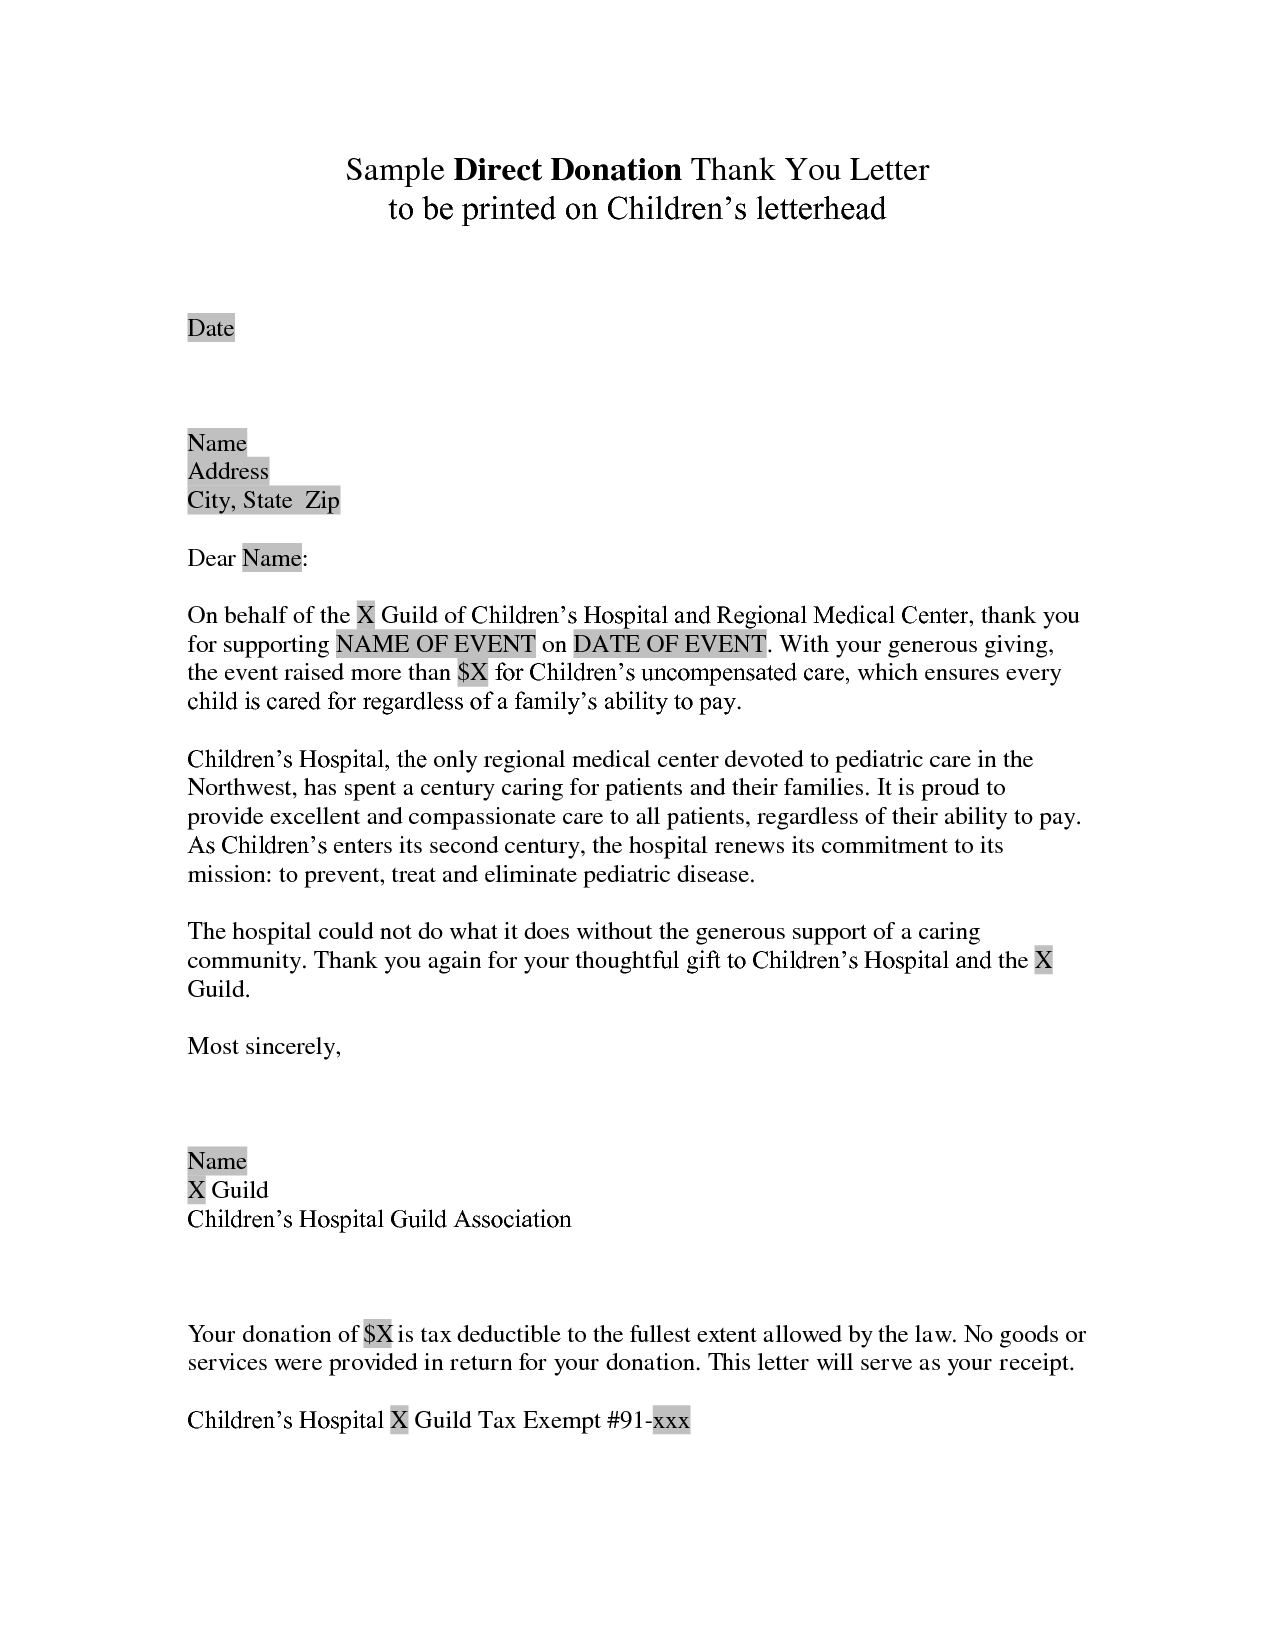 fundraiser letter template example-donation letter template for fundraiser donor thank you letter sample 9c 12-a